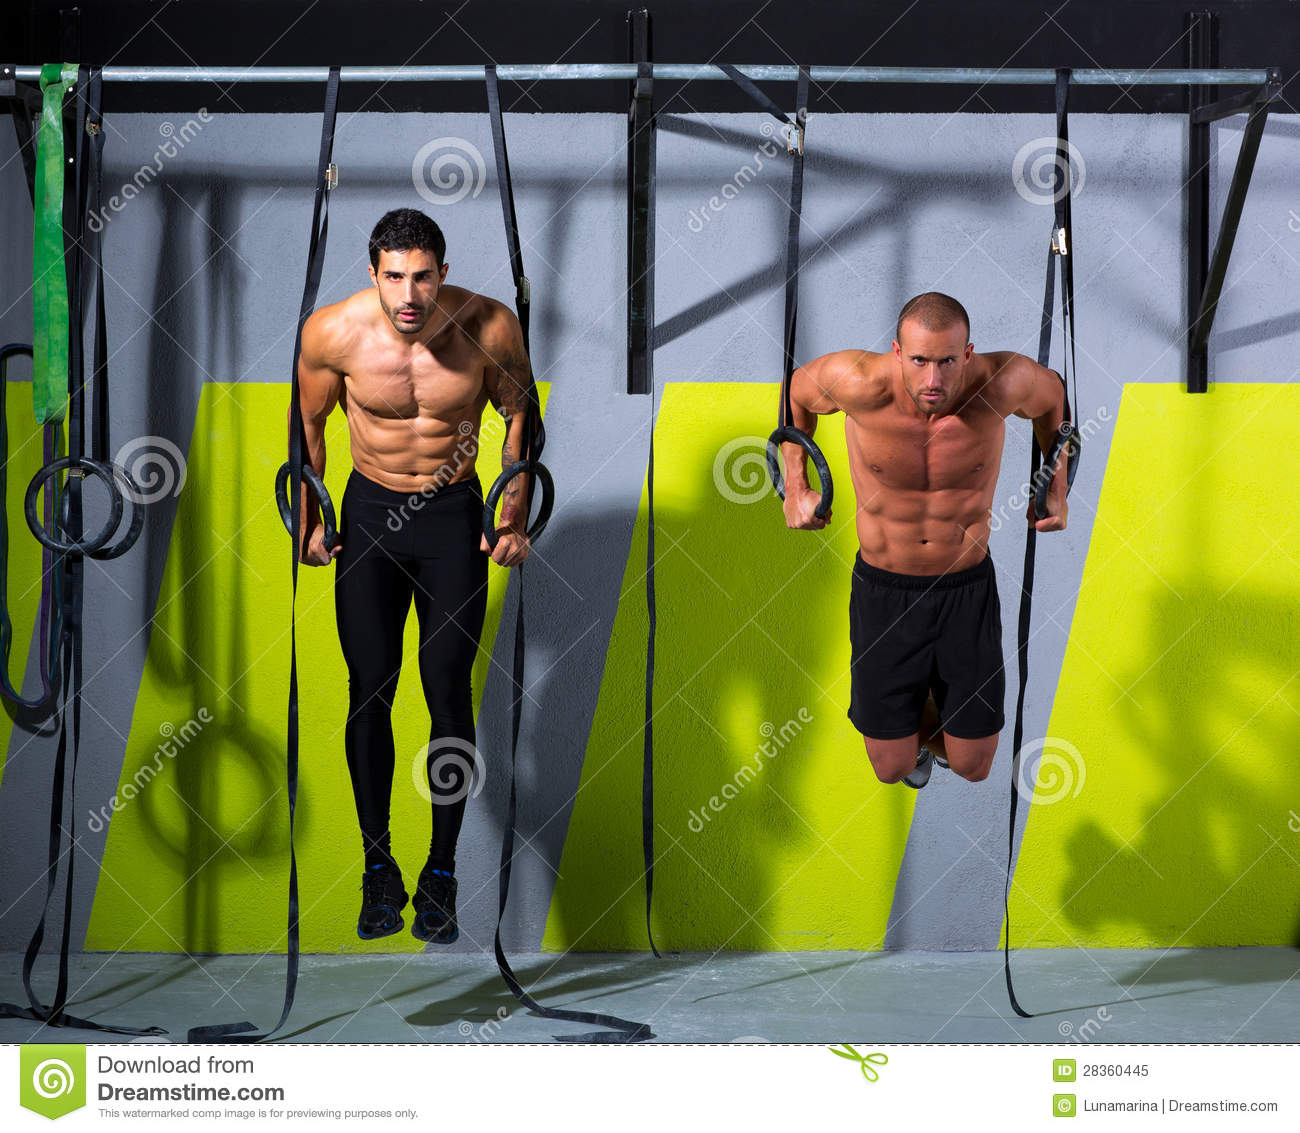 Workout Photography: Crossfit Dip Ring Two Men Workout At Gym Royalty Free